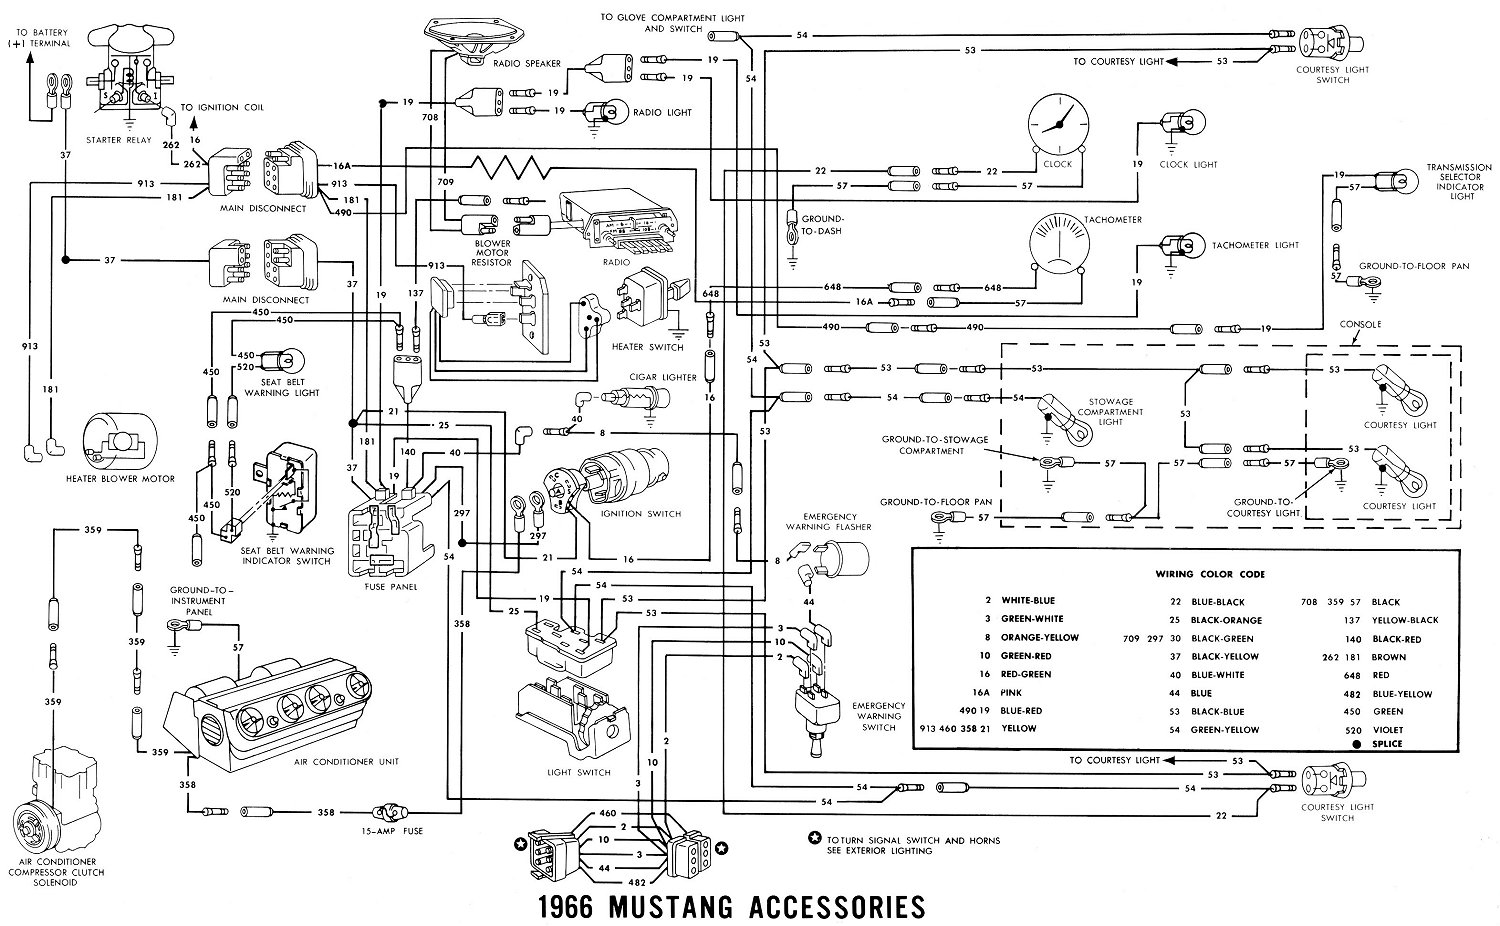 hight resolution of 1966 ford mustang wiring diagram wiring schematic diagram rh aikidorodez com 2007 ford e250 wiring diagram